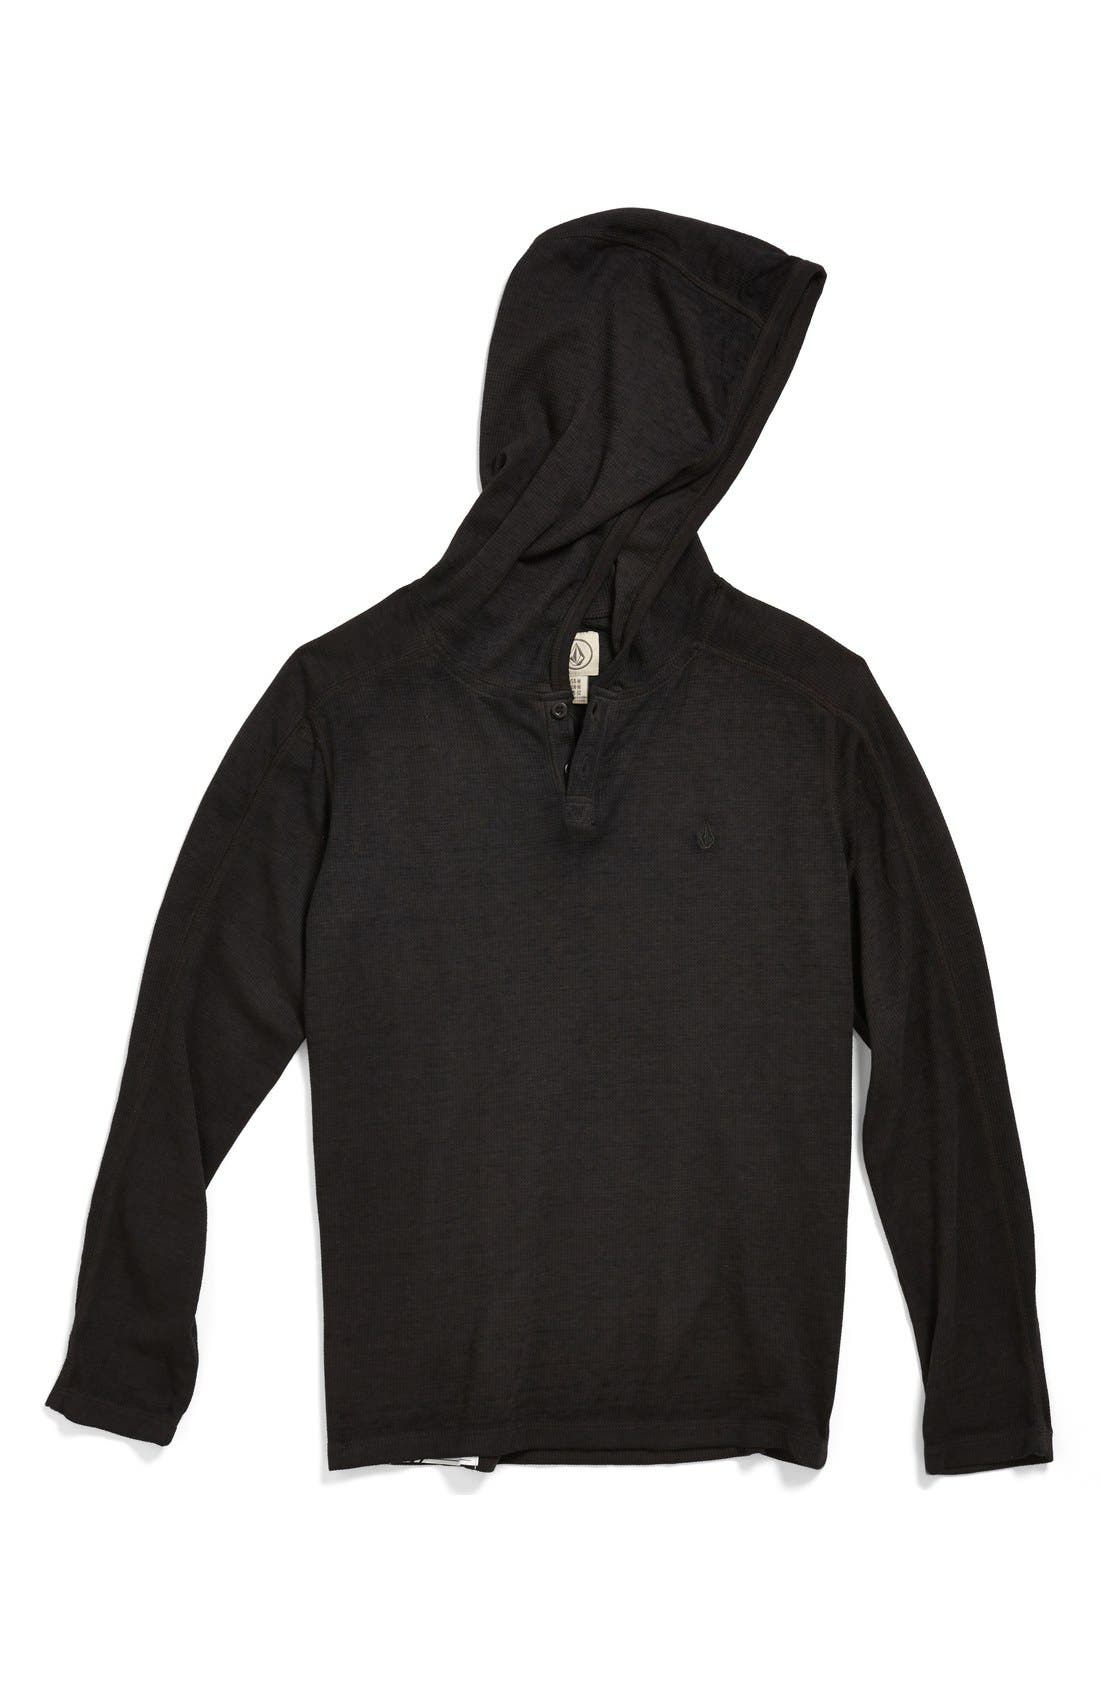 Alternate Image 1 Selected - Volcom 'Burnt' Waffle Weave Hoodie (Big Boys)